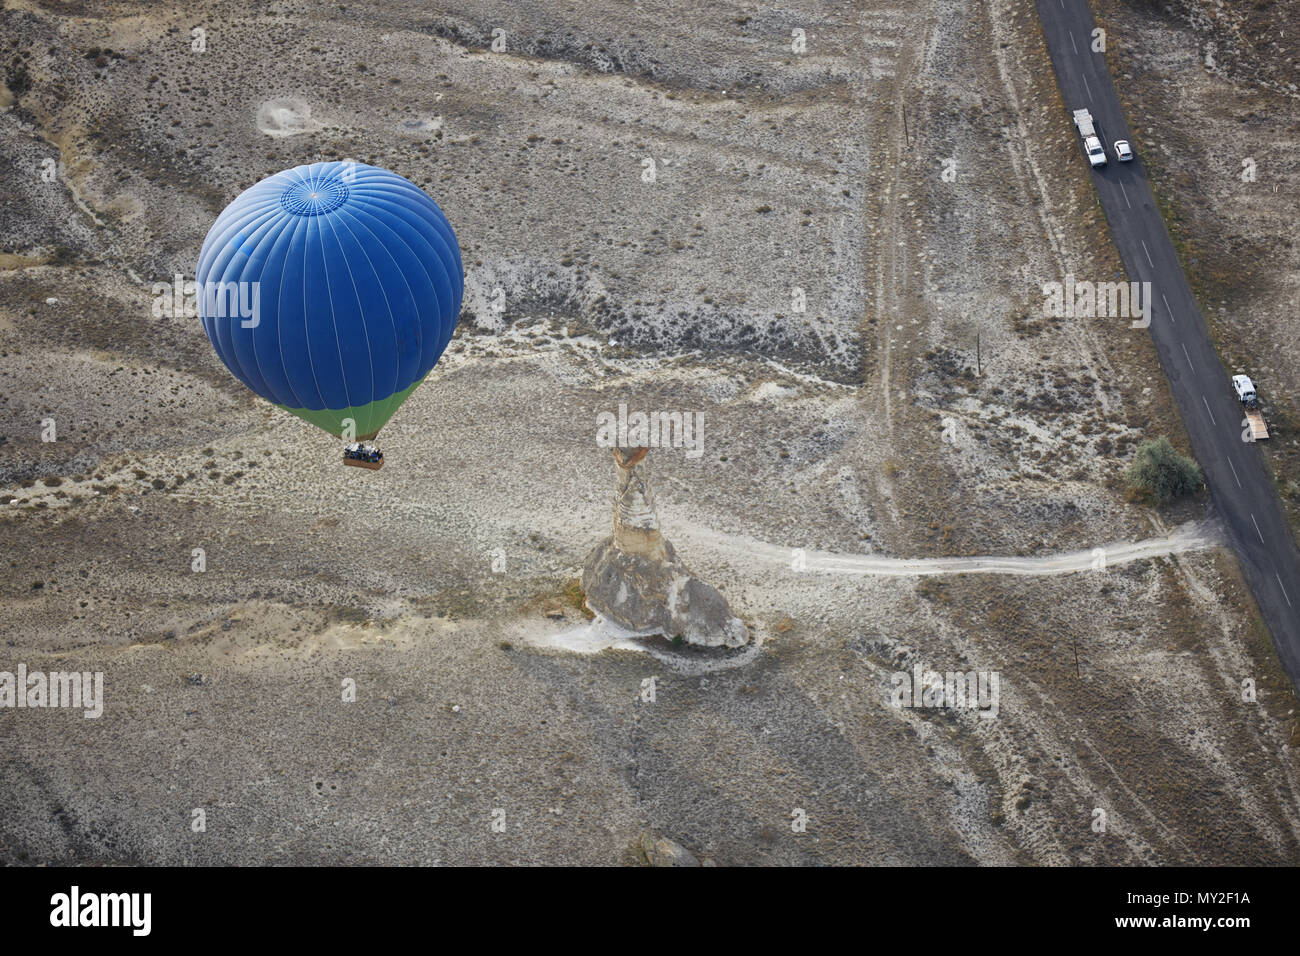 Blur hot air balloon flying over the road with motor transport. View from above - Stock Image